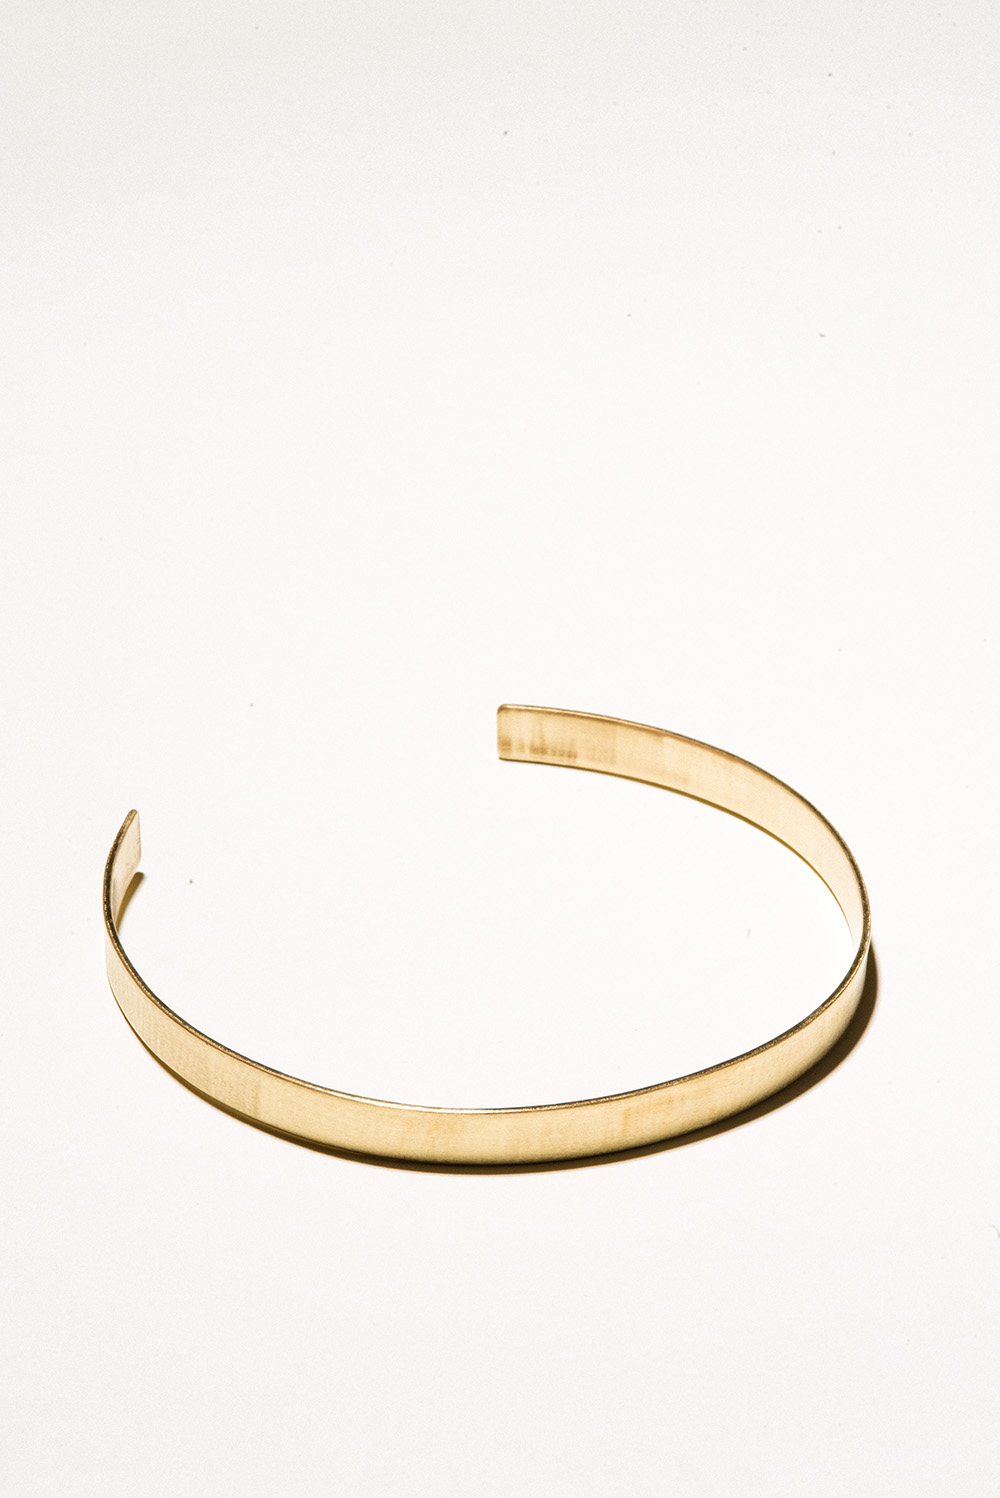 10 Brass Collar - 10mm wideJewelers Brass with Lacquer FinishHand Smithed$150